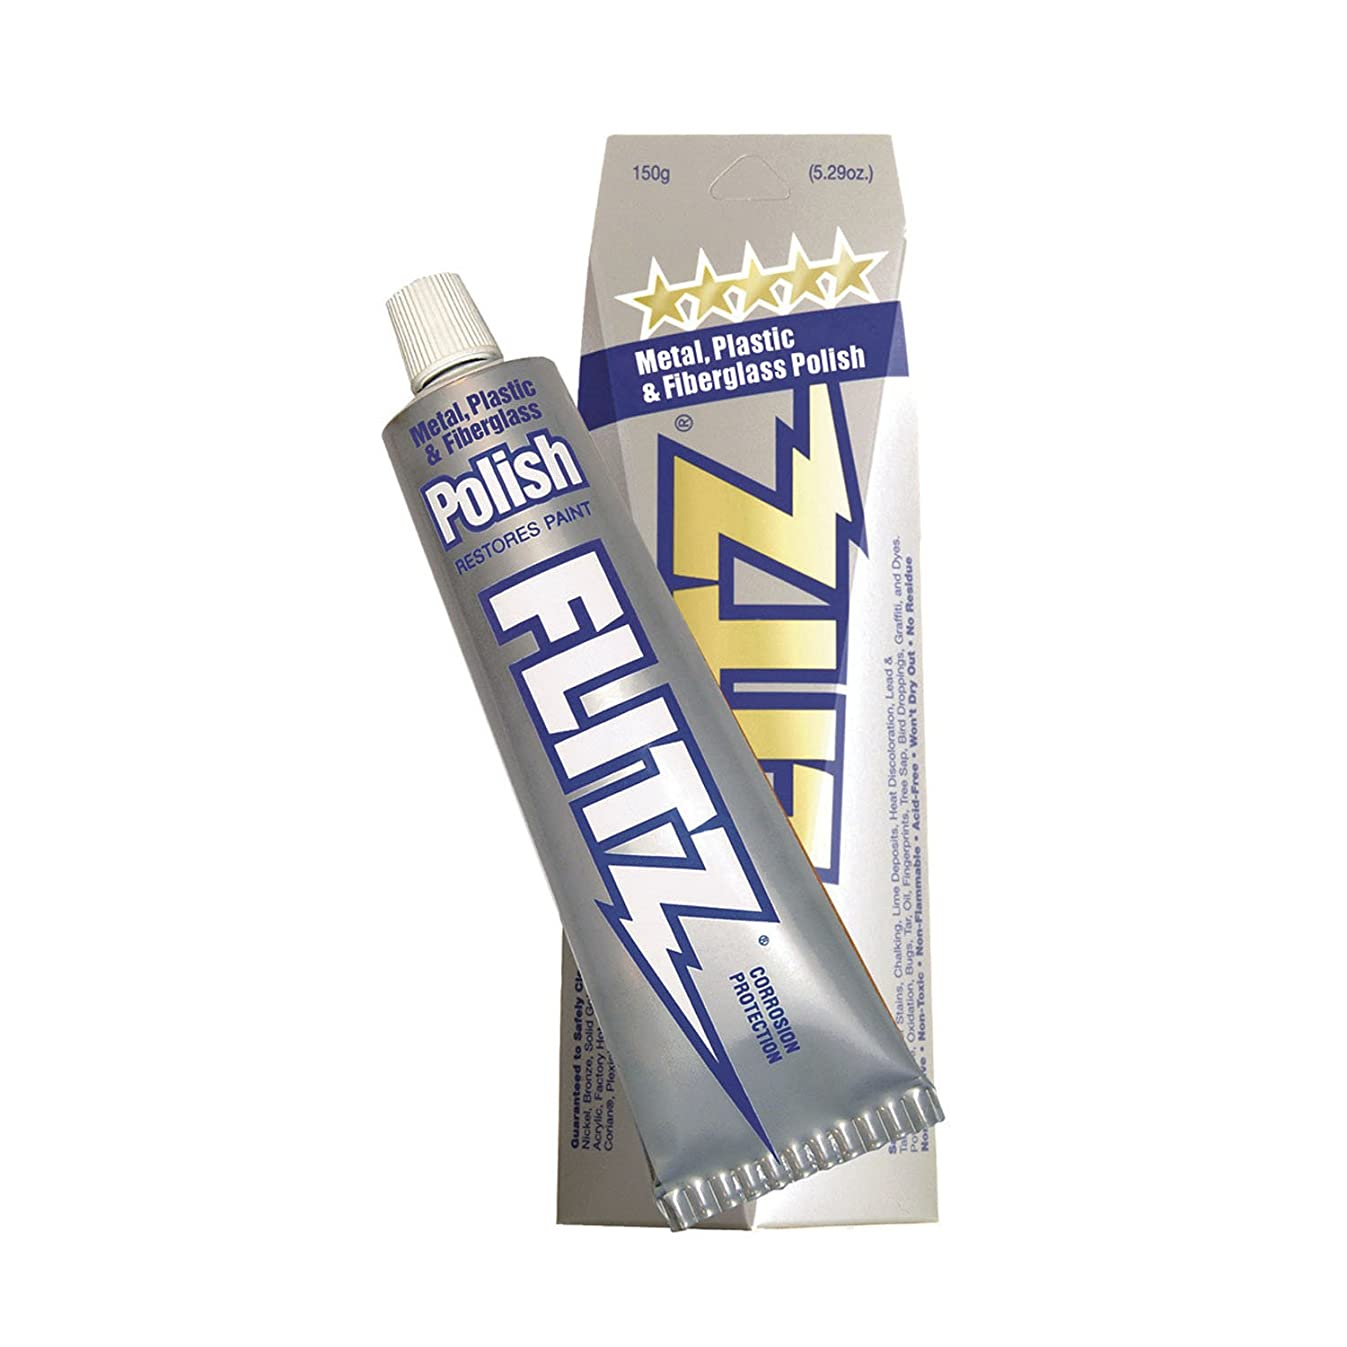 Flitz Polish - Paste - 5.29 oz. Boxed Tube